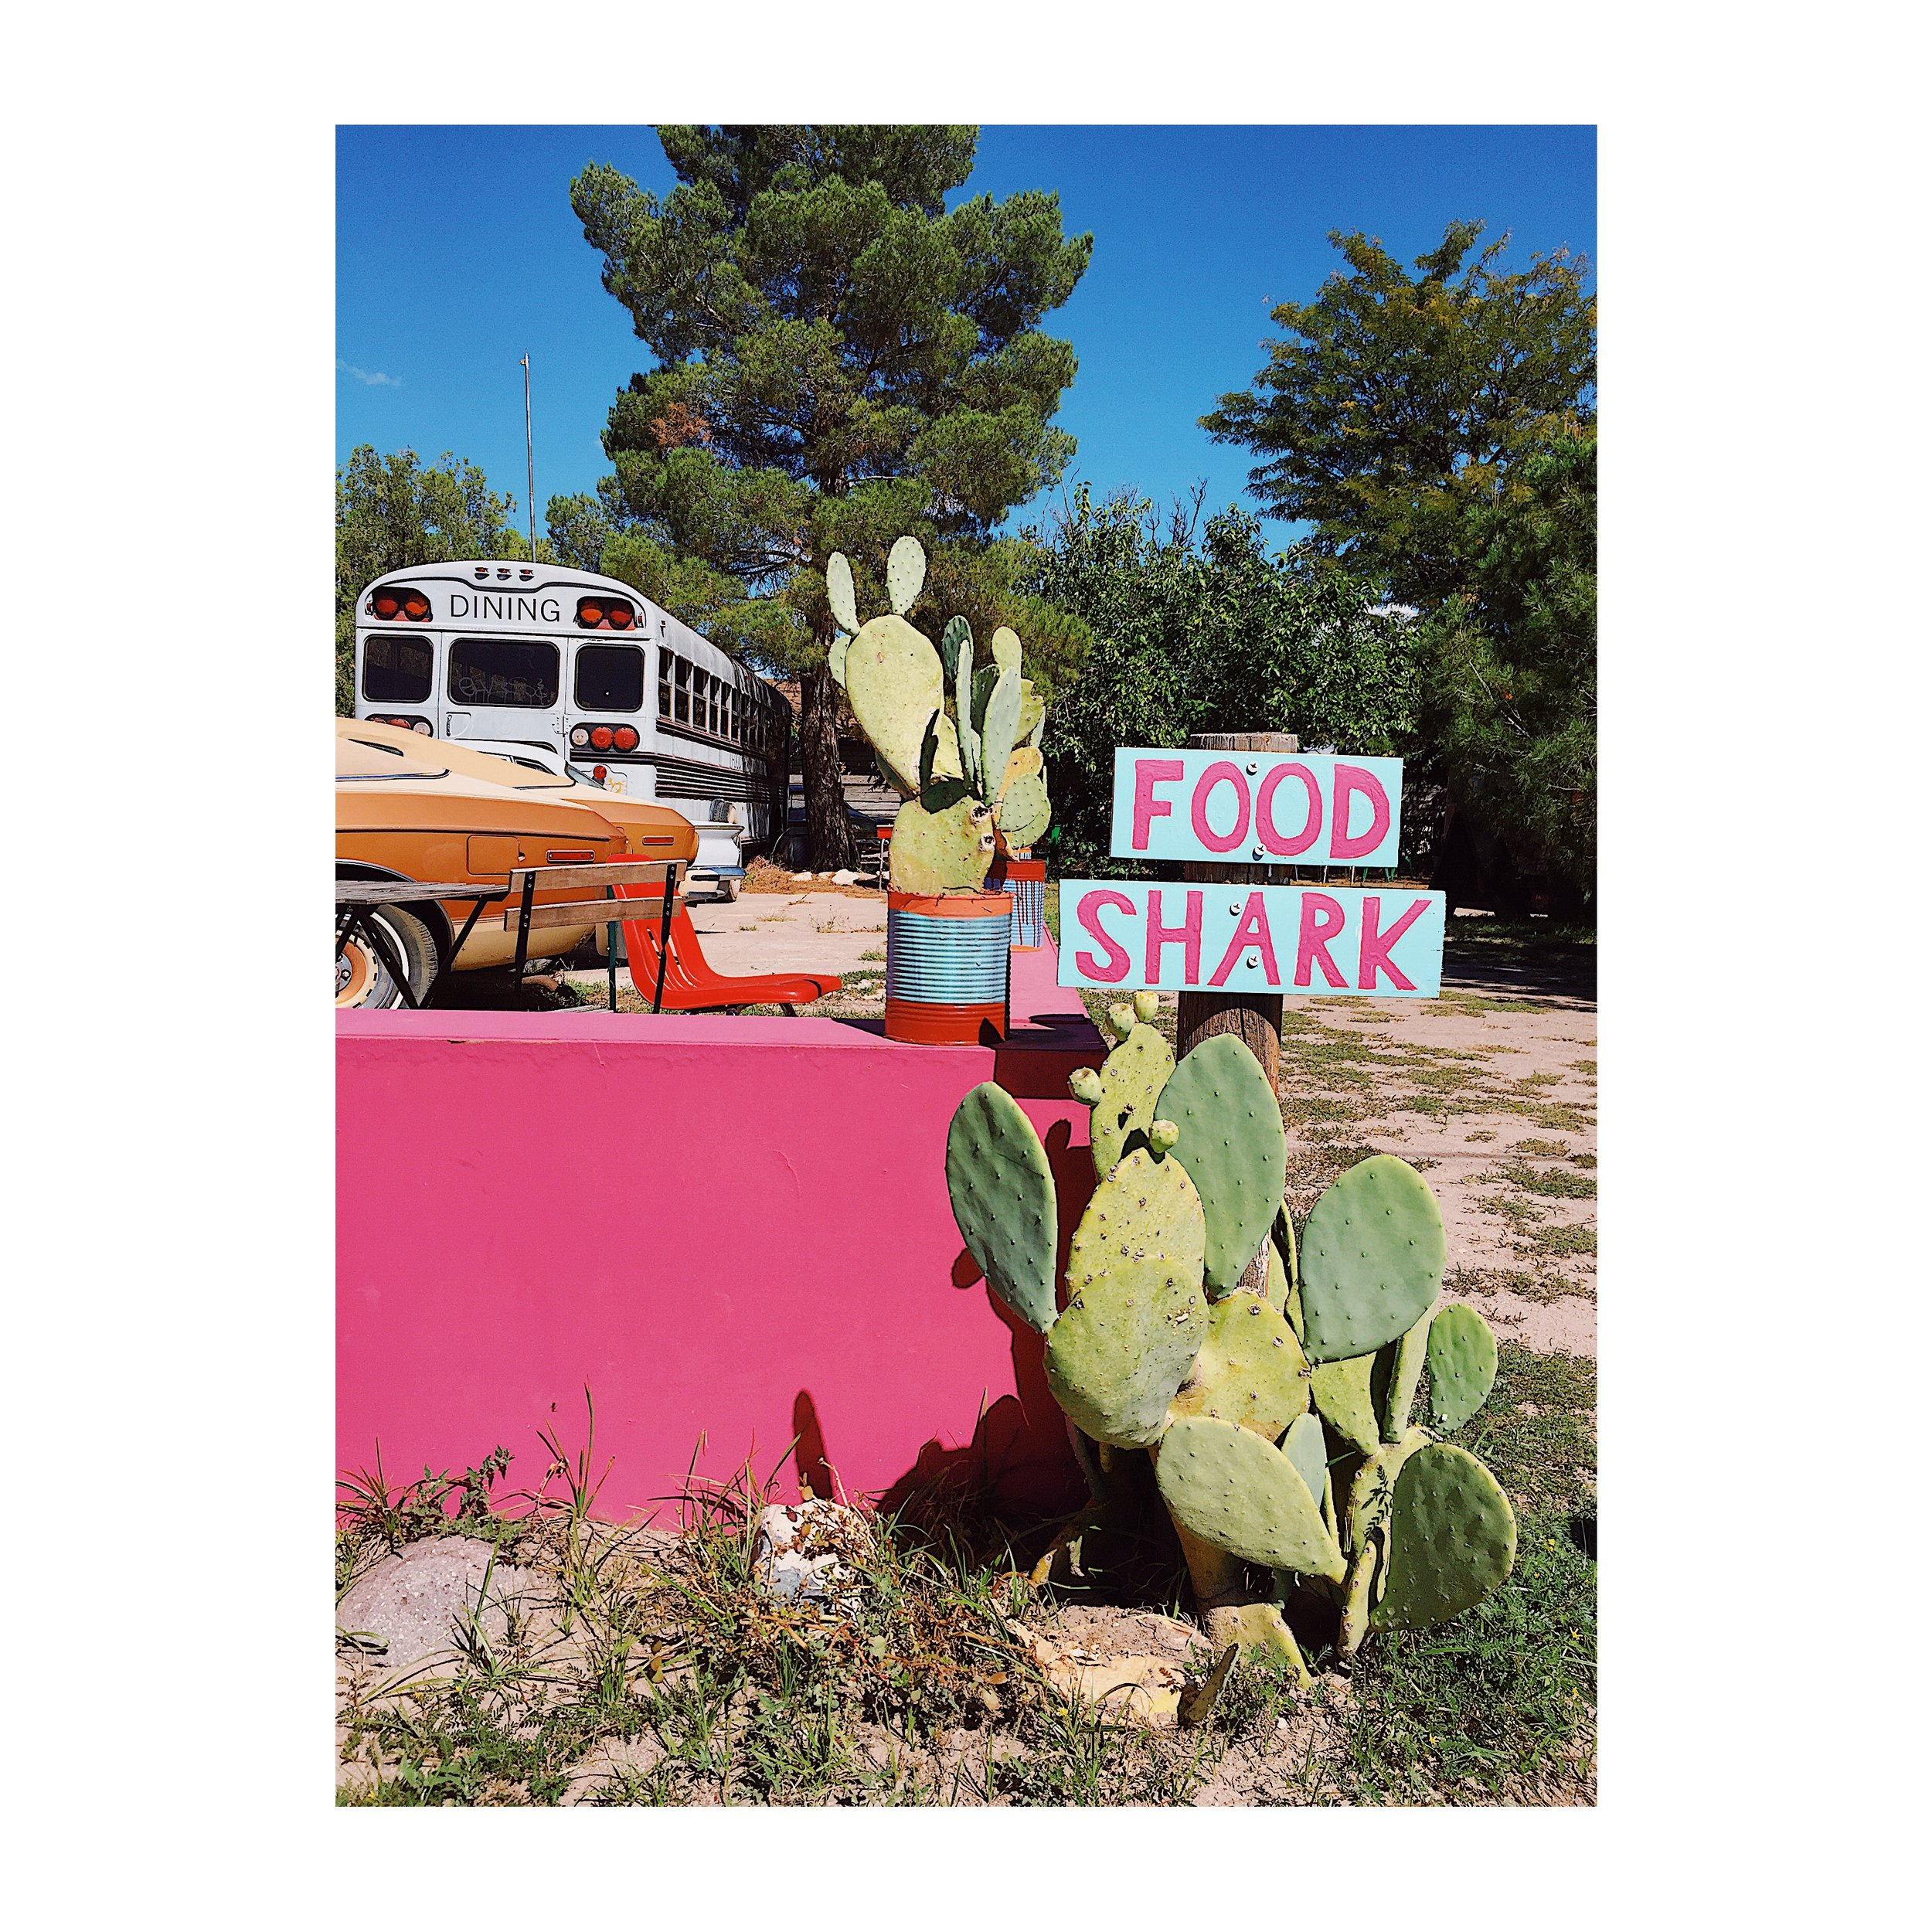 The entrance to the outdoor dining at Food Shark. Photo by Jodee Molina.